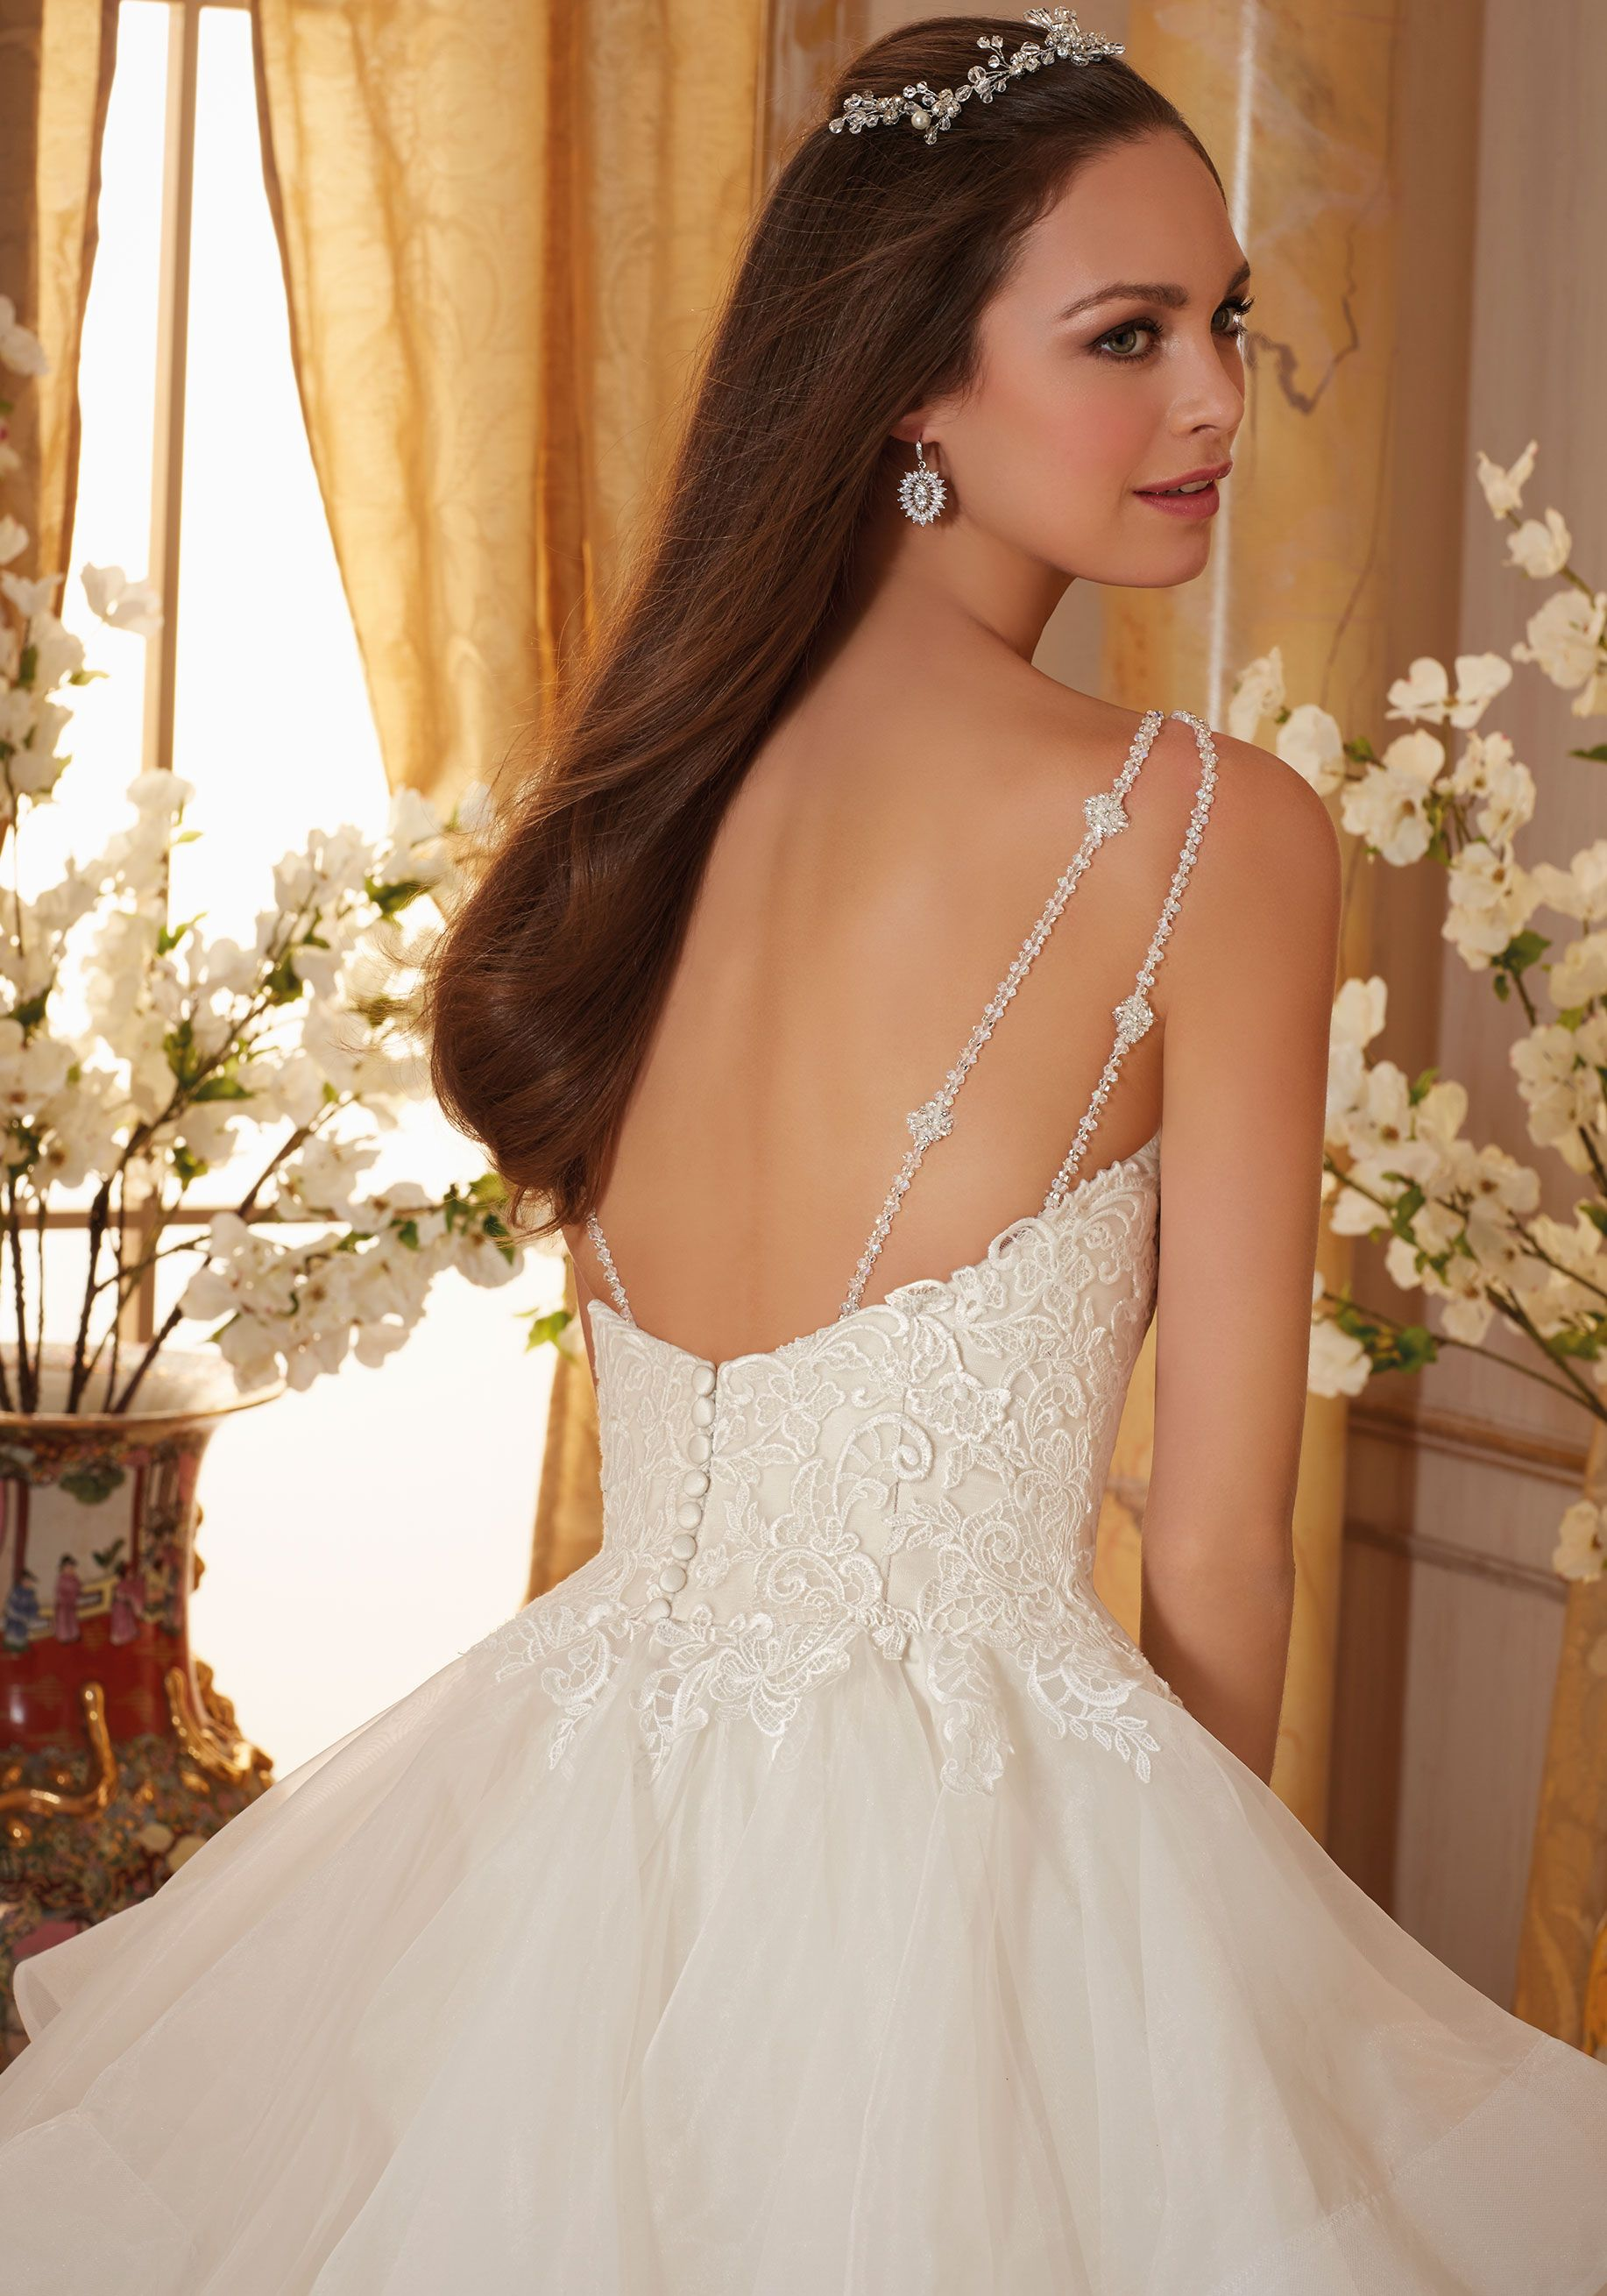 Crystal Beaded Straps Meet Embroidered Appliques on